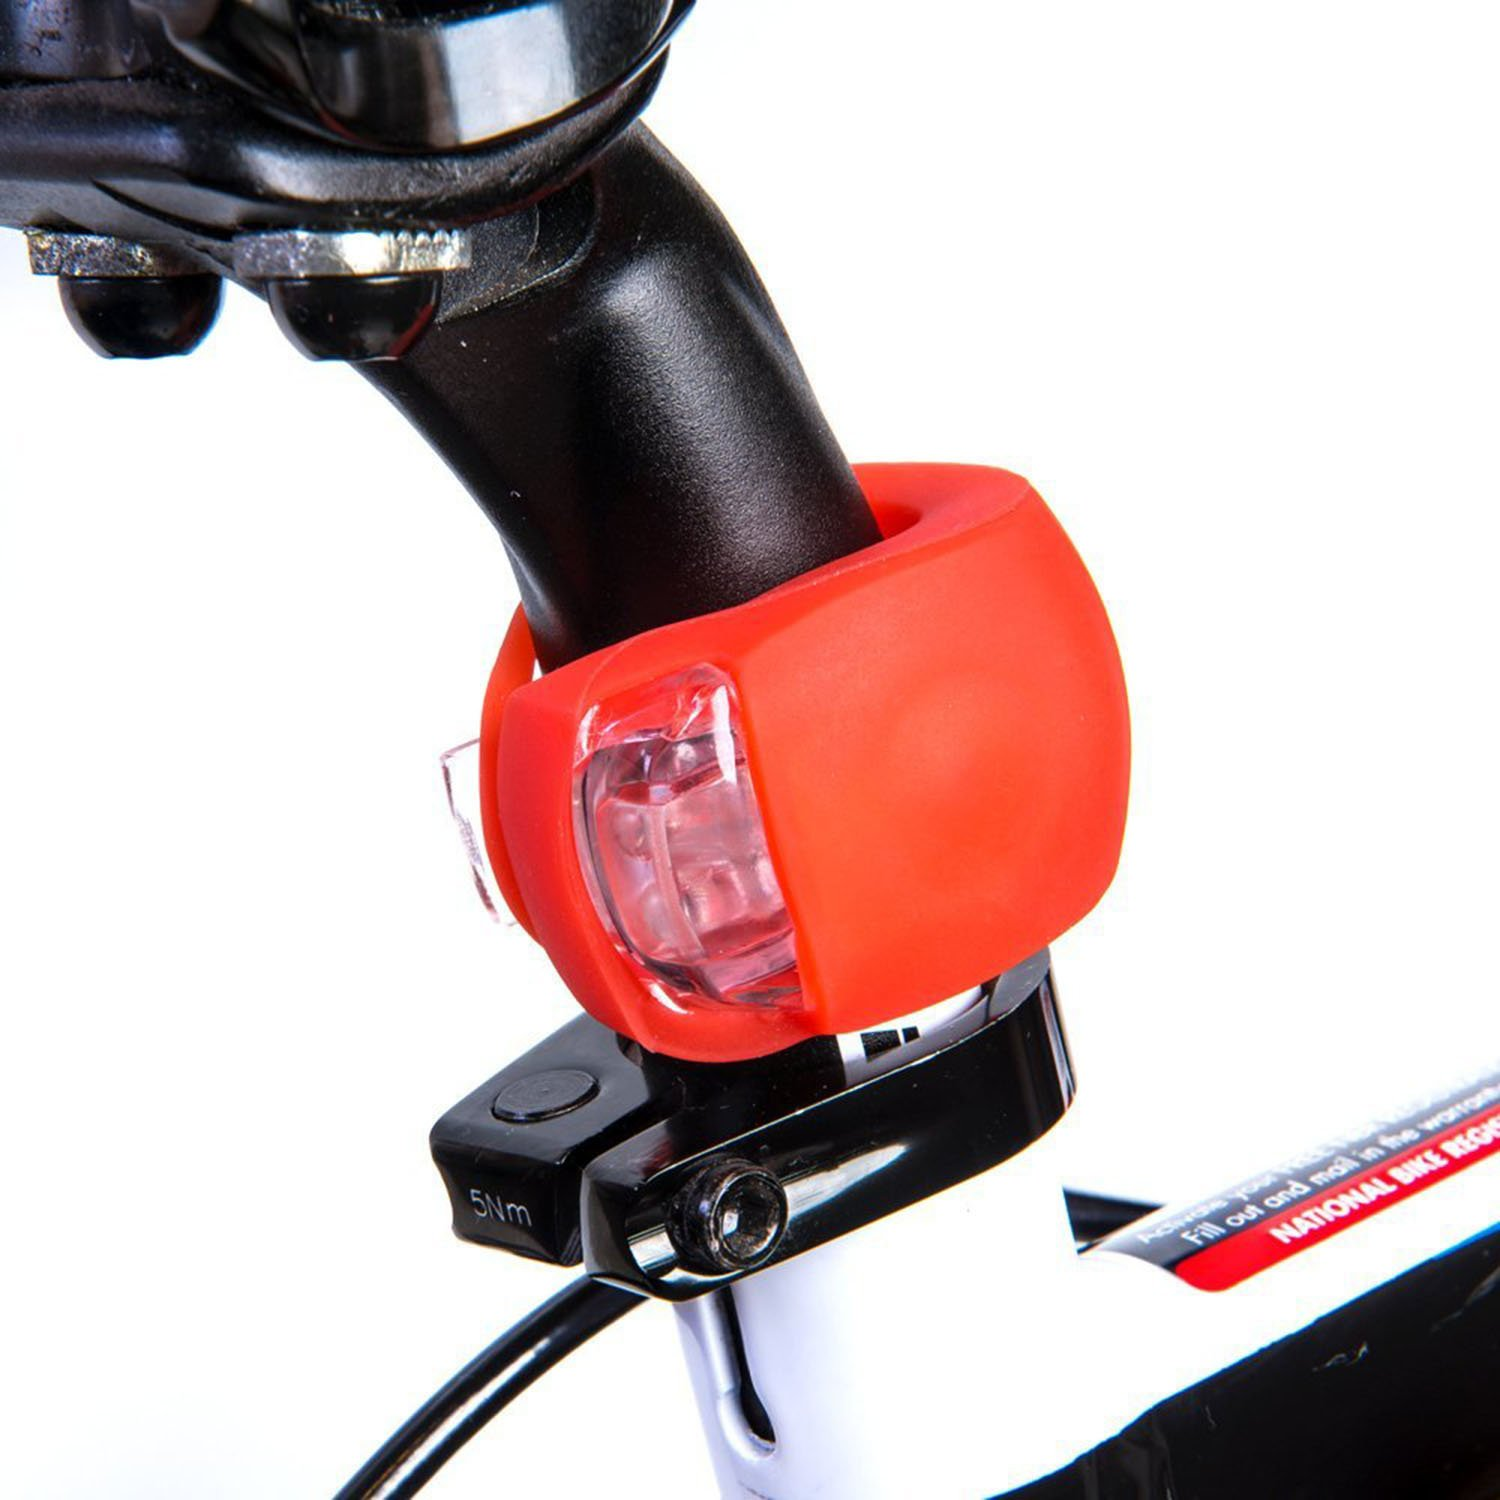 HeroBeam Bike Lights Double Set - The Ultimate Lighting and Safety Pack of Super Bright Front Bicycle Lights, Tail Lights and Wheel Lights - 5 Year Warranty by HeroBeam (Image #4)